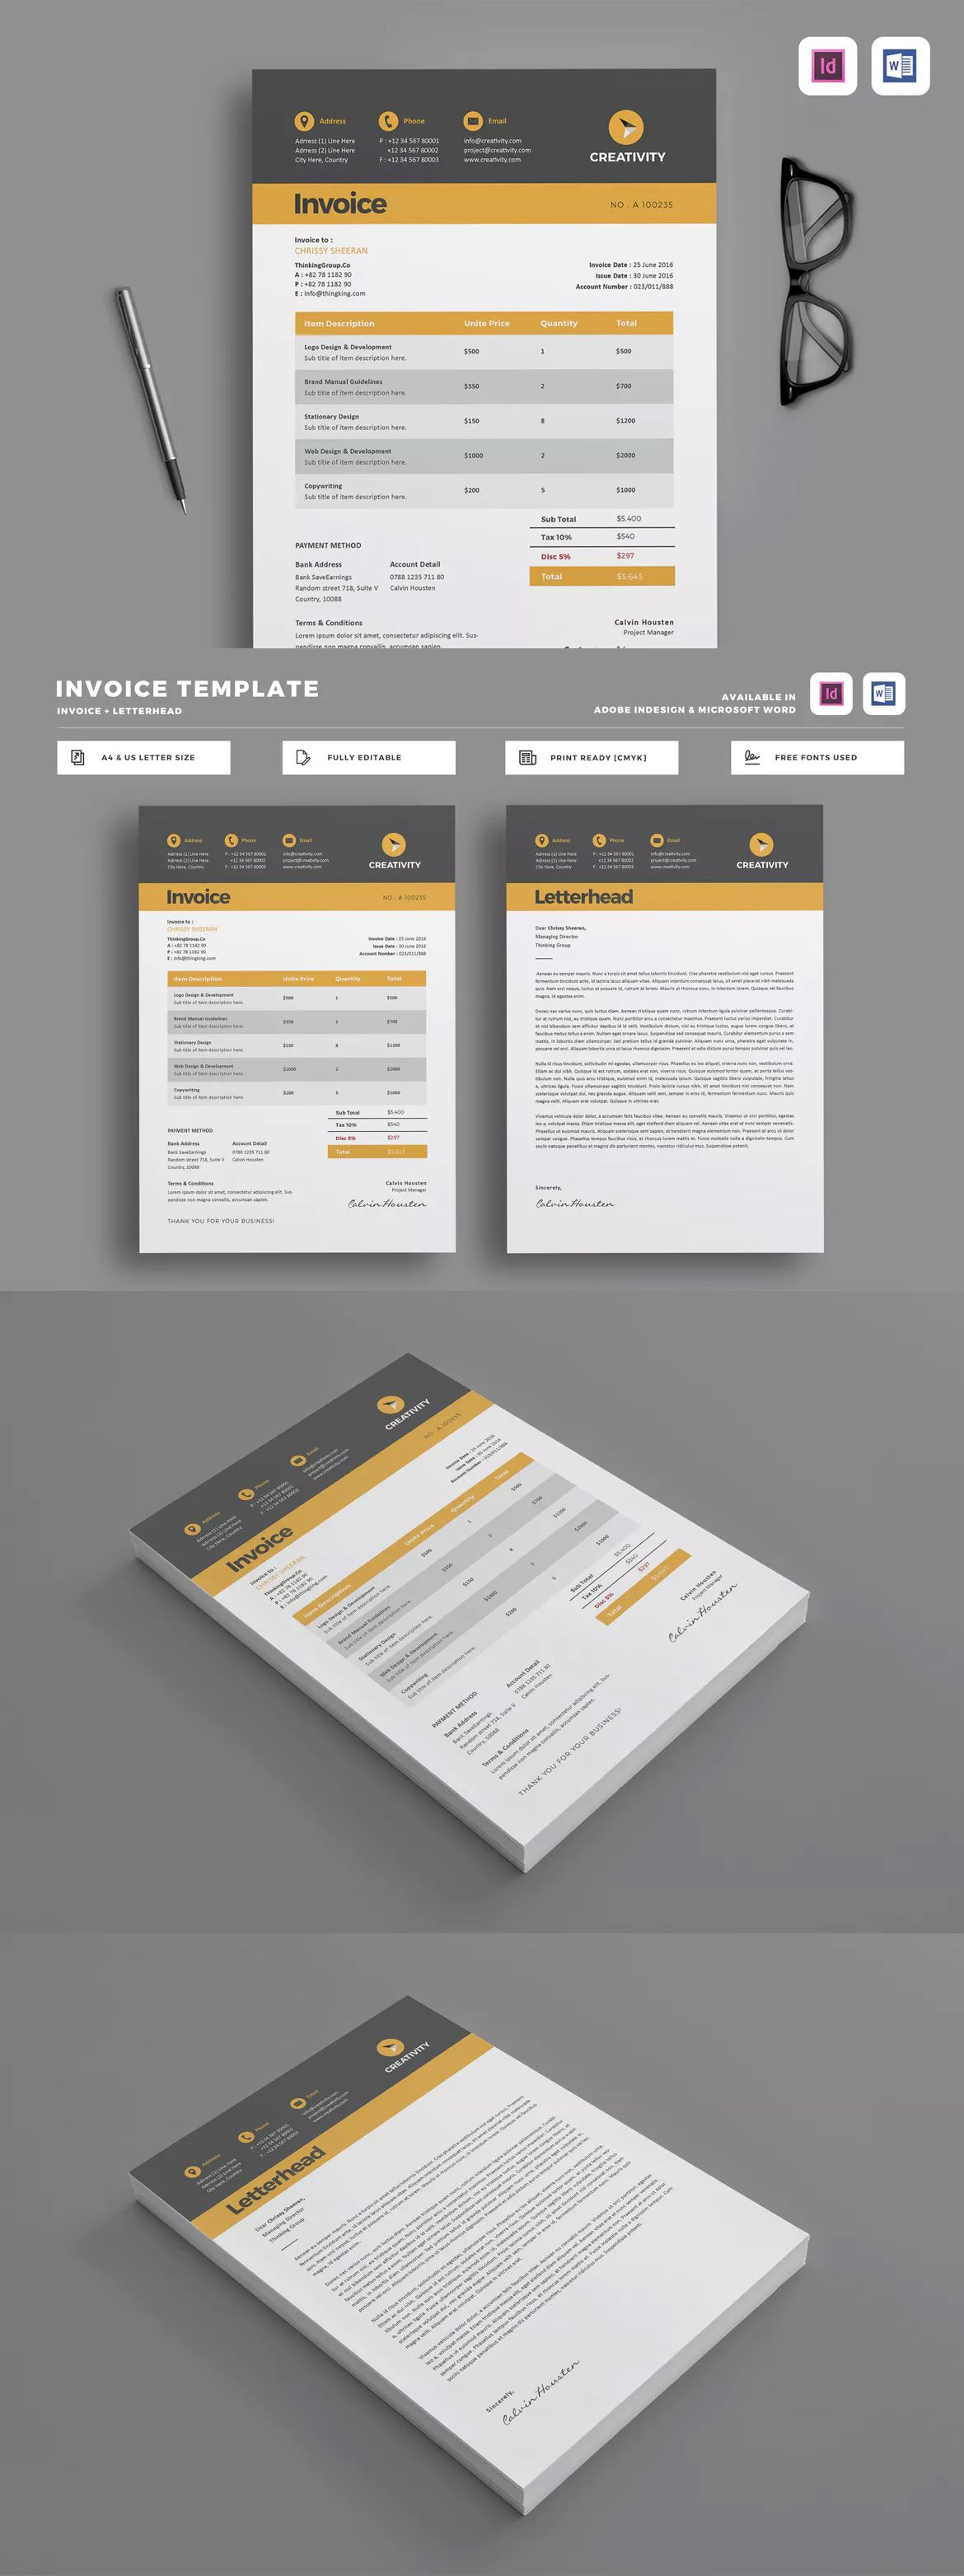 Invoice Template Indesign Indd A Us Letter